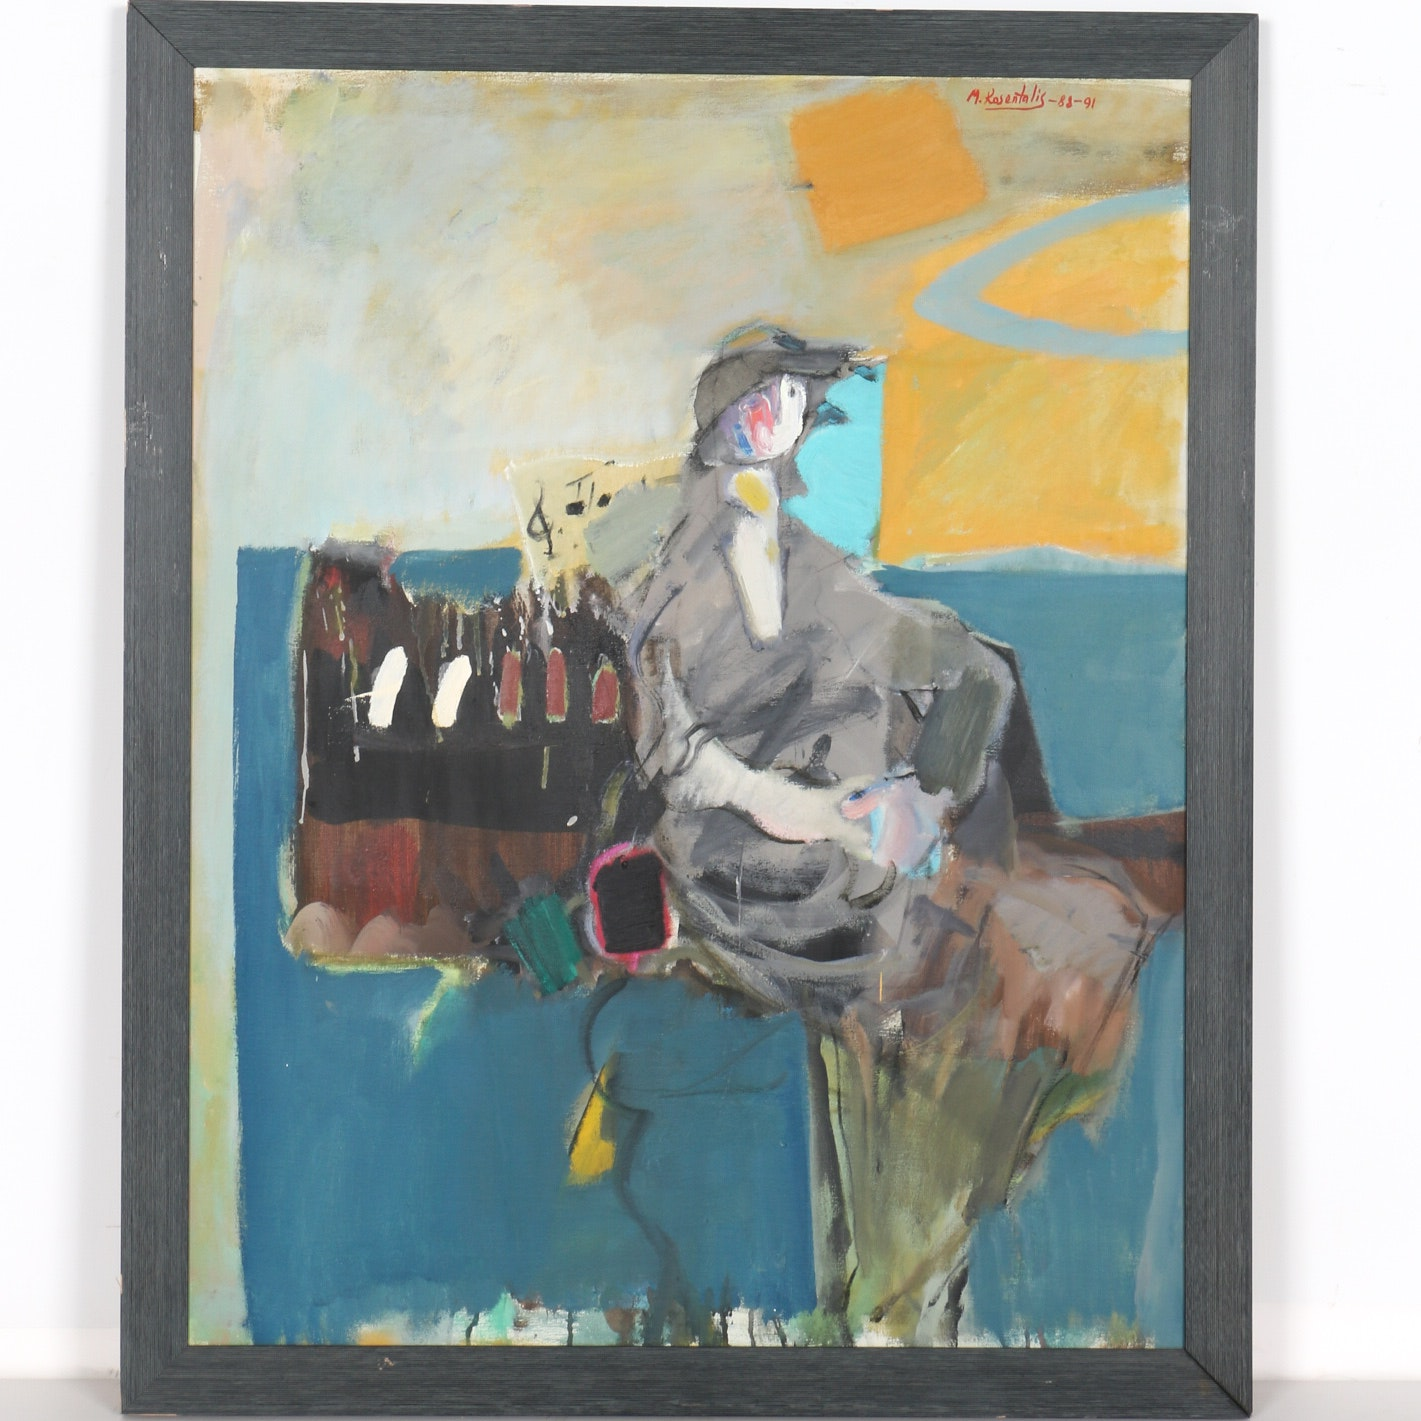 Moshe Rosenthalis Oil Painting on Canvas of A Figure by a Piano